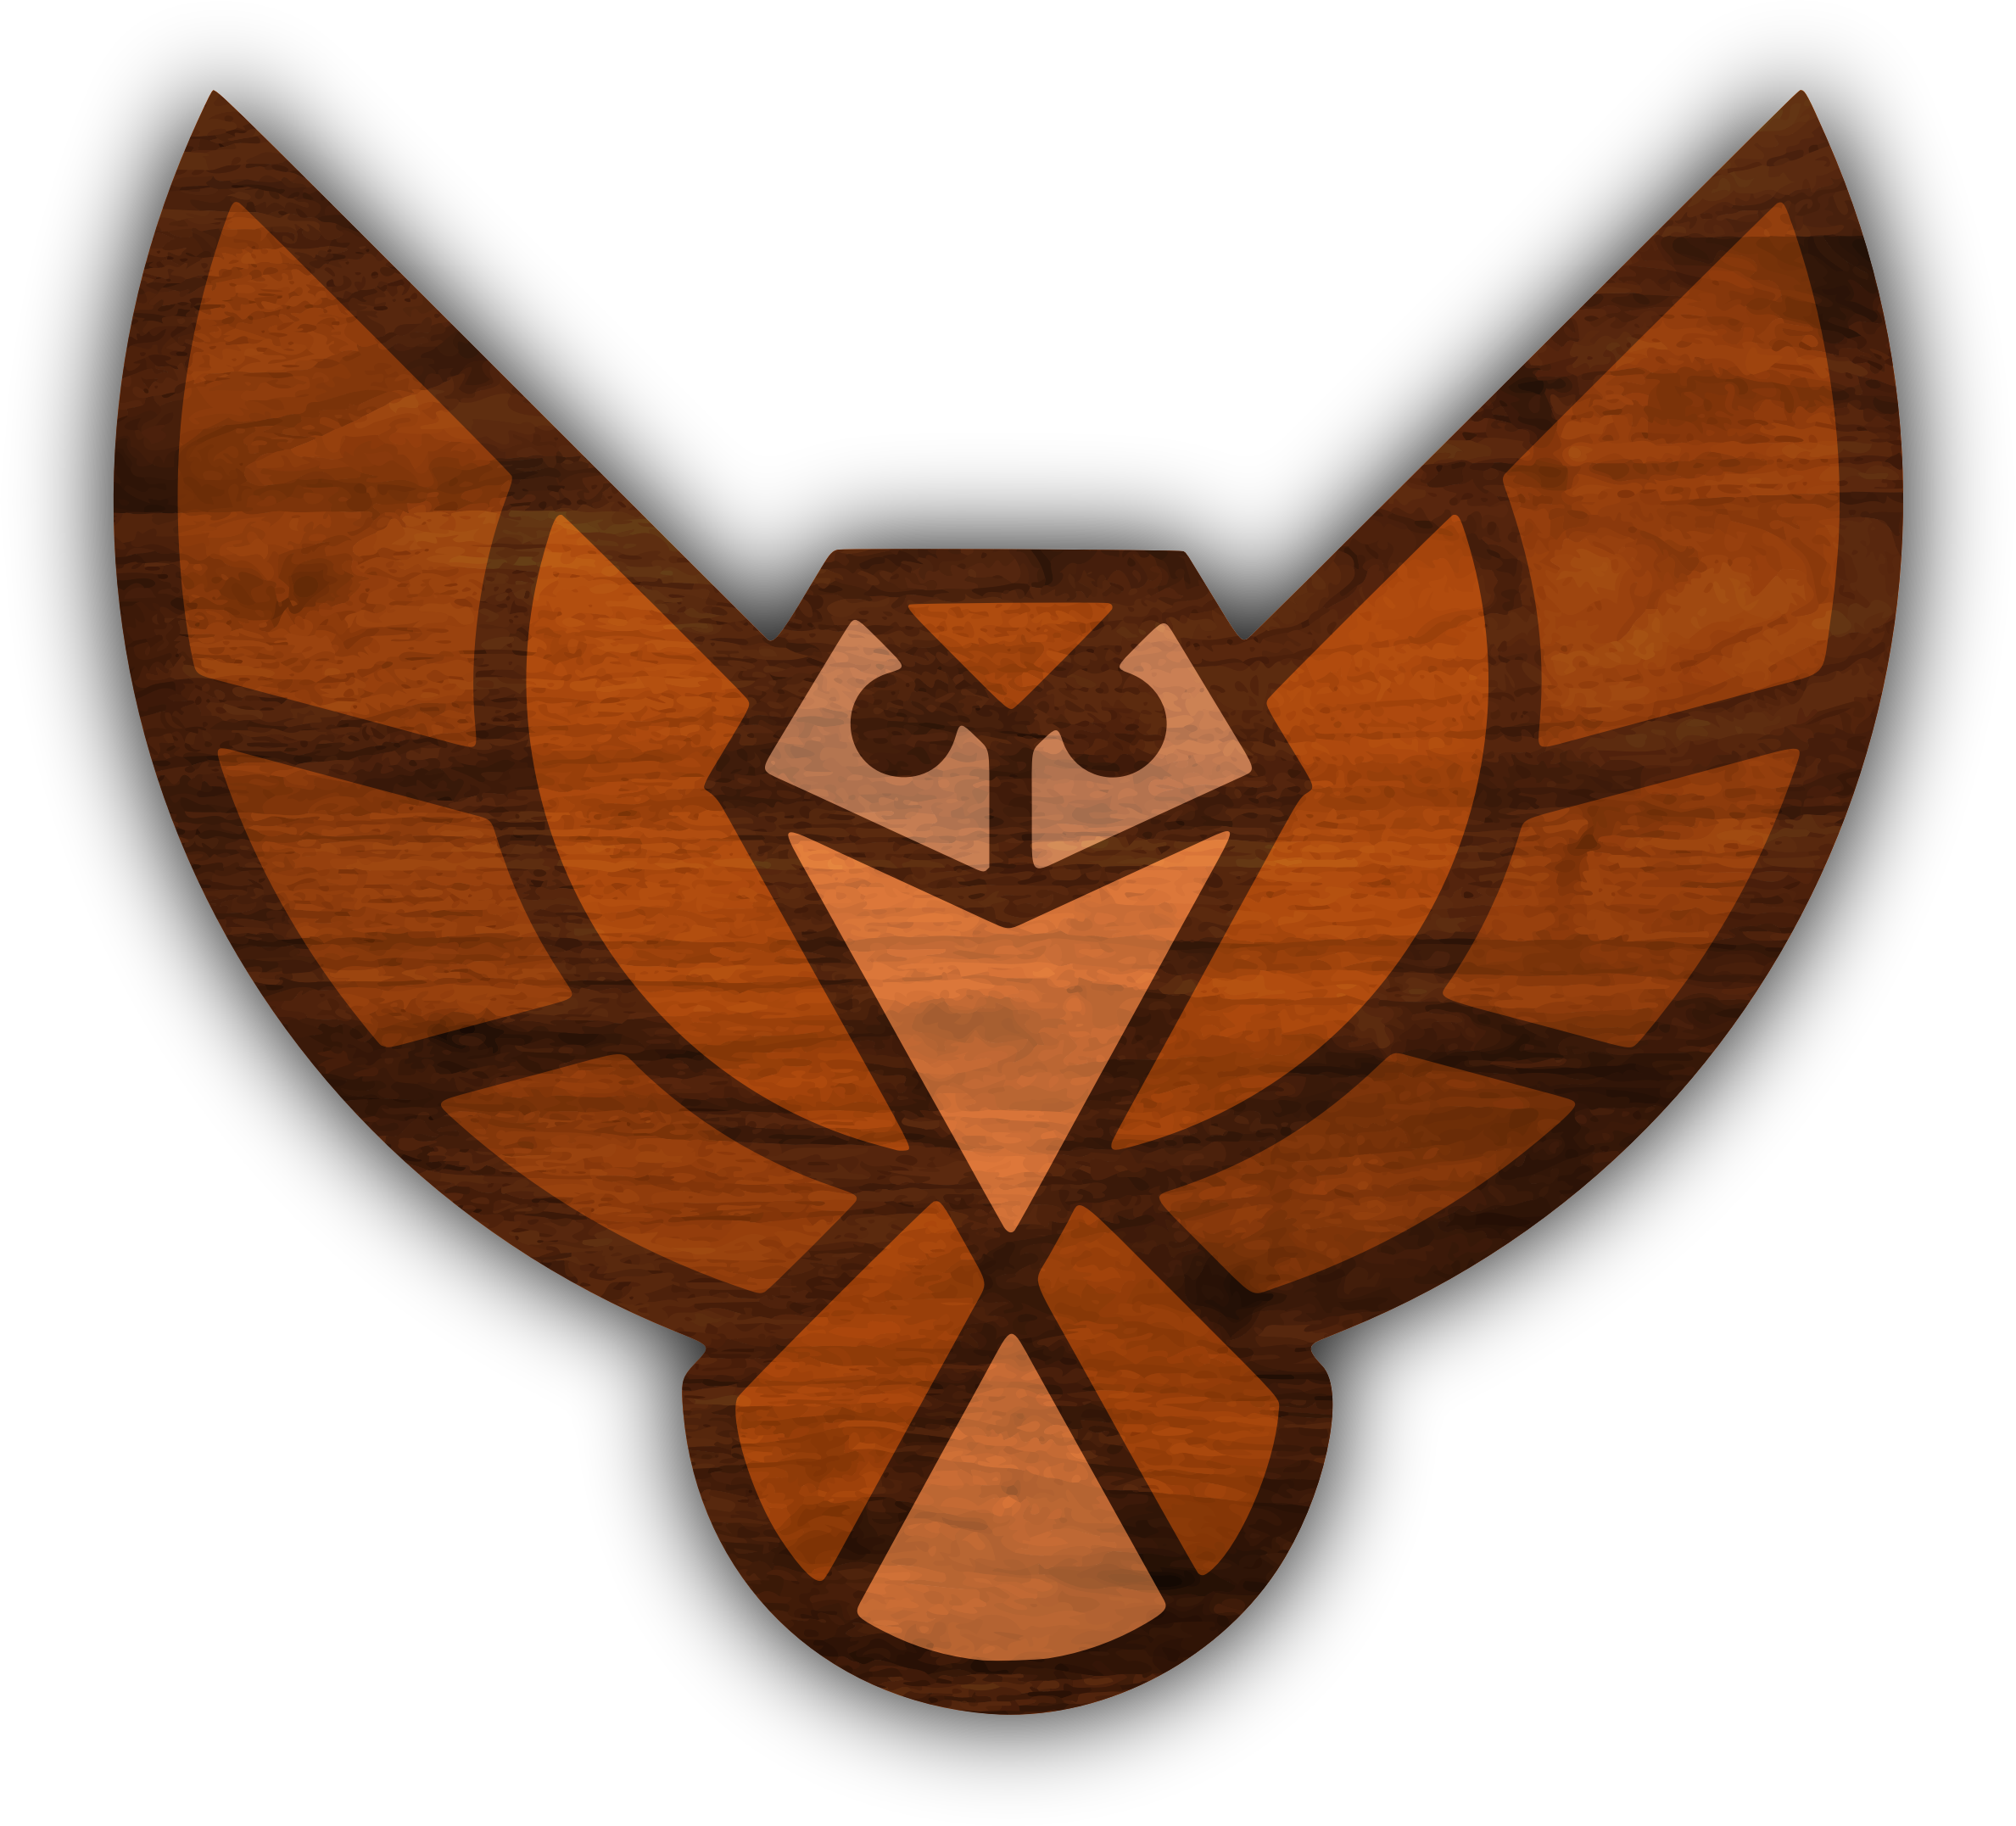 Wood texture owl no. Clipart fall woods